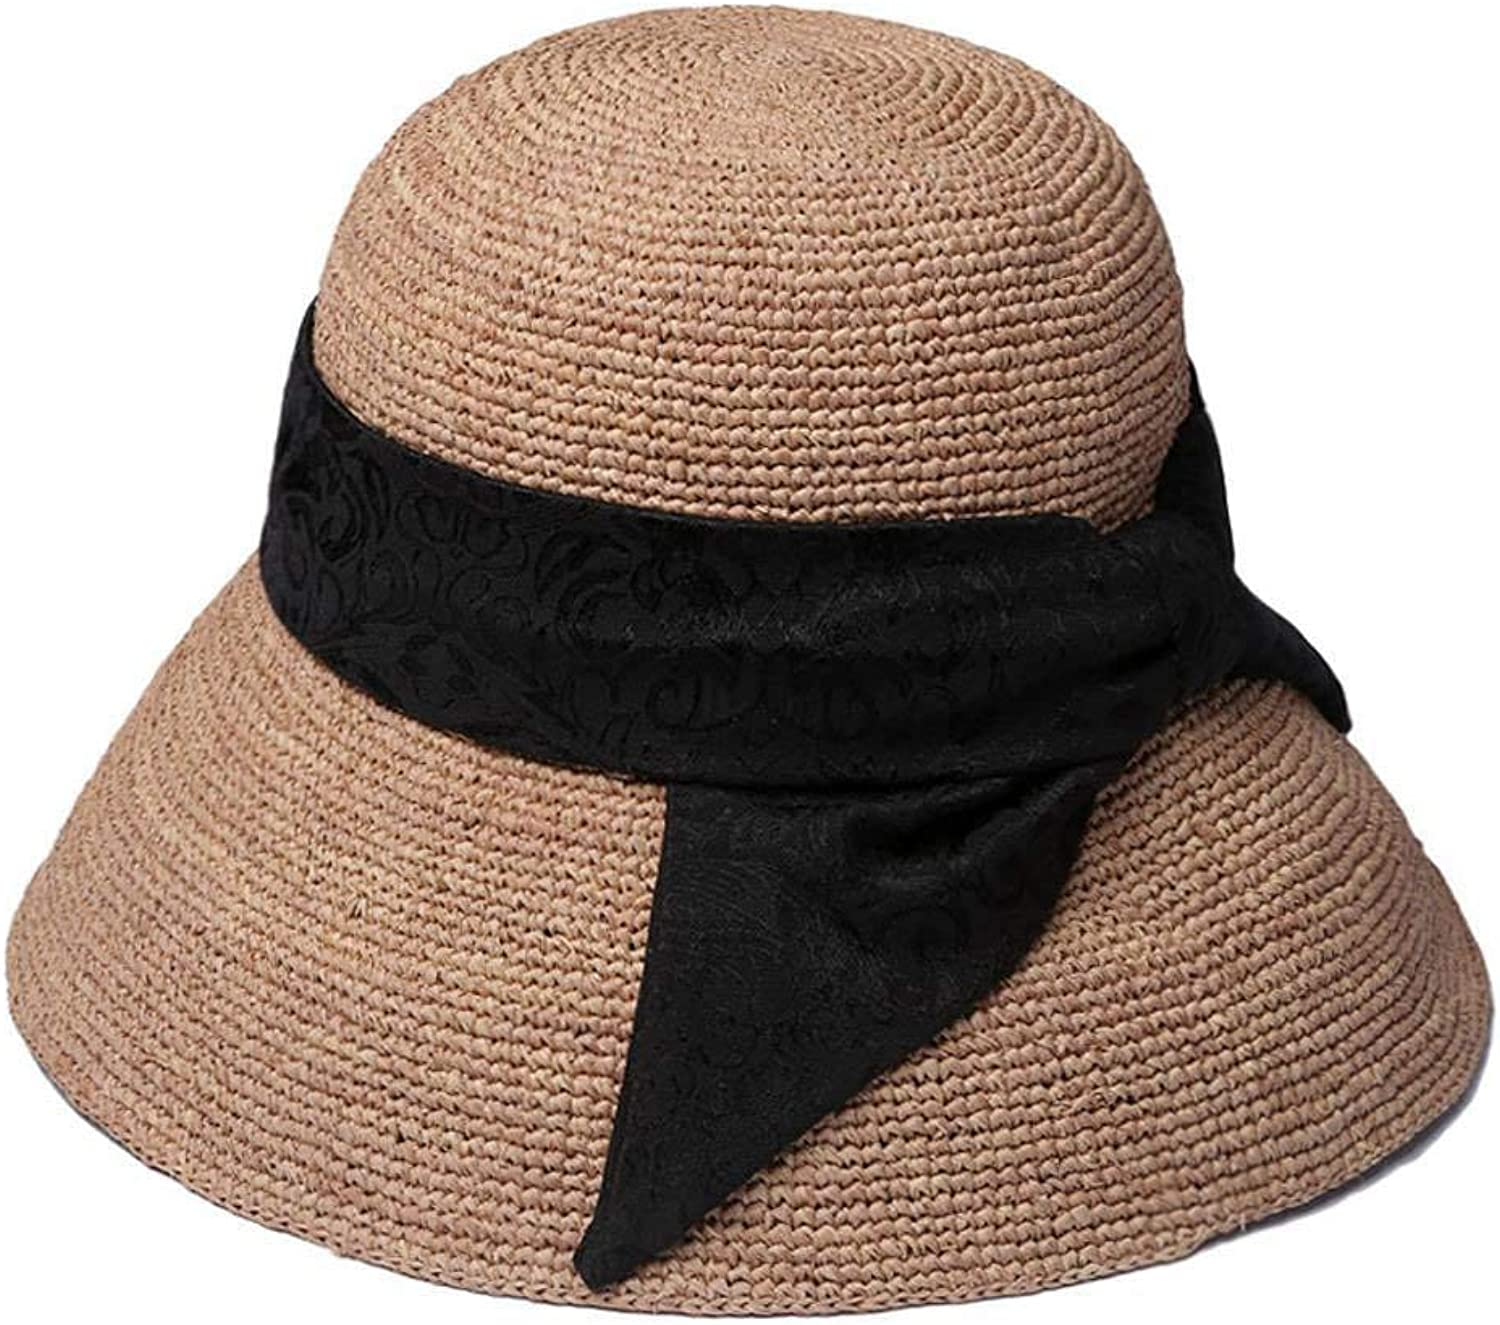 Yunfeng Hats for Ladies,Spring and Summer Lady's Straw hat Outdoor Lafite Sunscreen Sun Visor